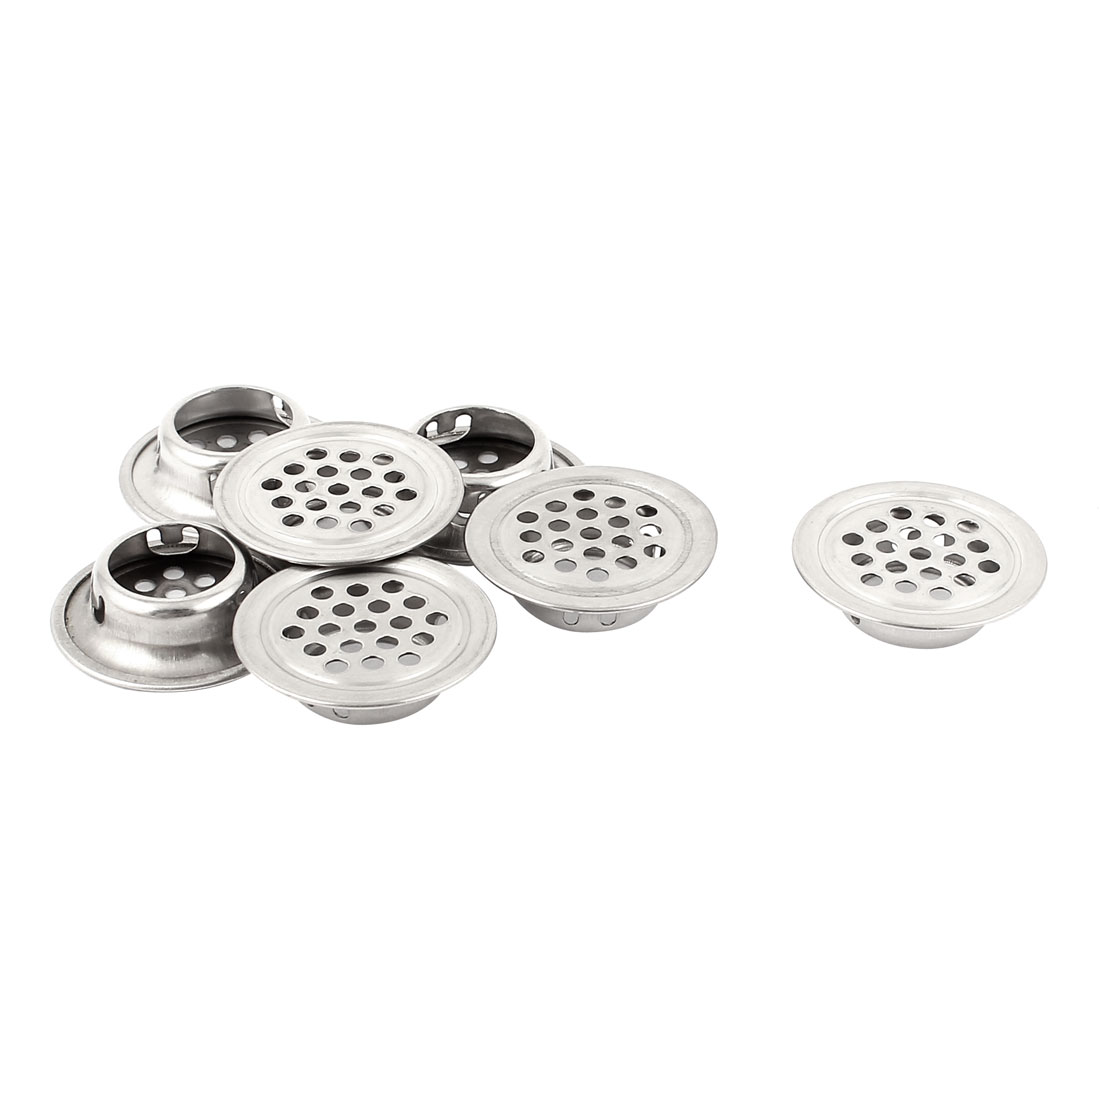 7 Pcs Stainless Steel Flat Round Shaped Mesh Hole Cabinet Air Vent Louver 19mm